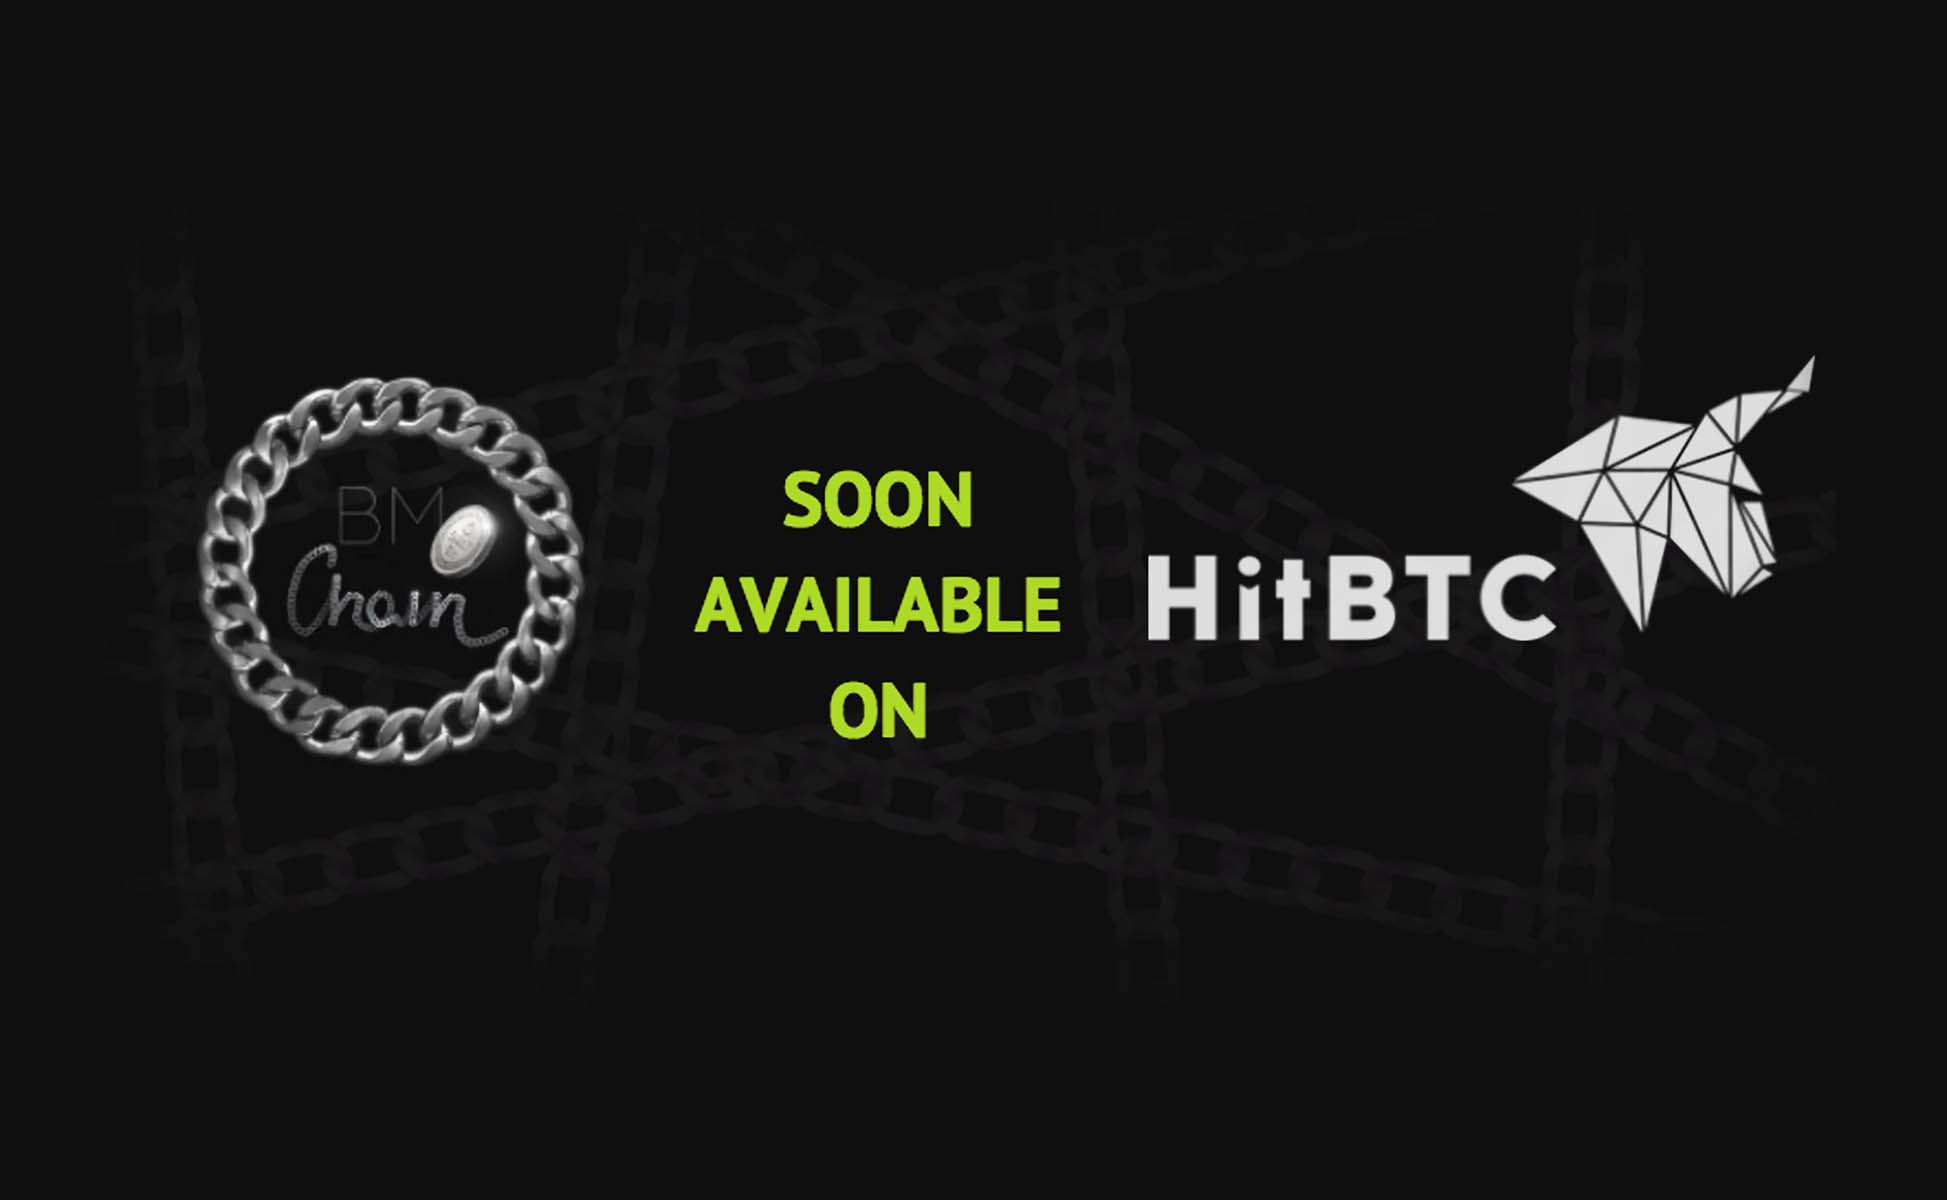 BMCHAIN ICO Ends Today, HitBTC Exchange Listing to Follow